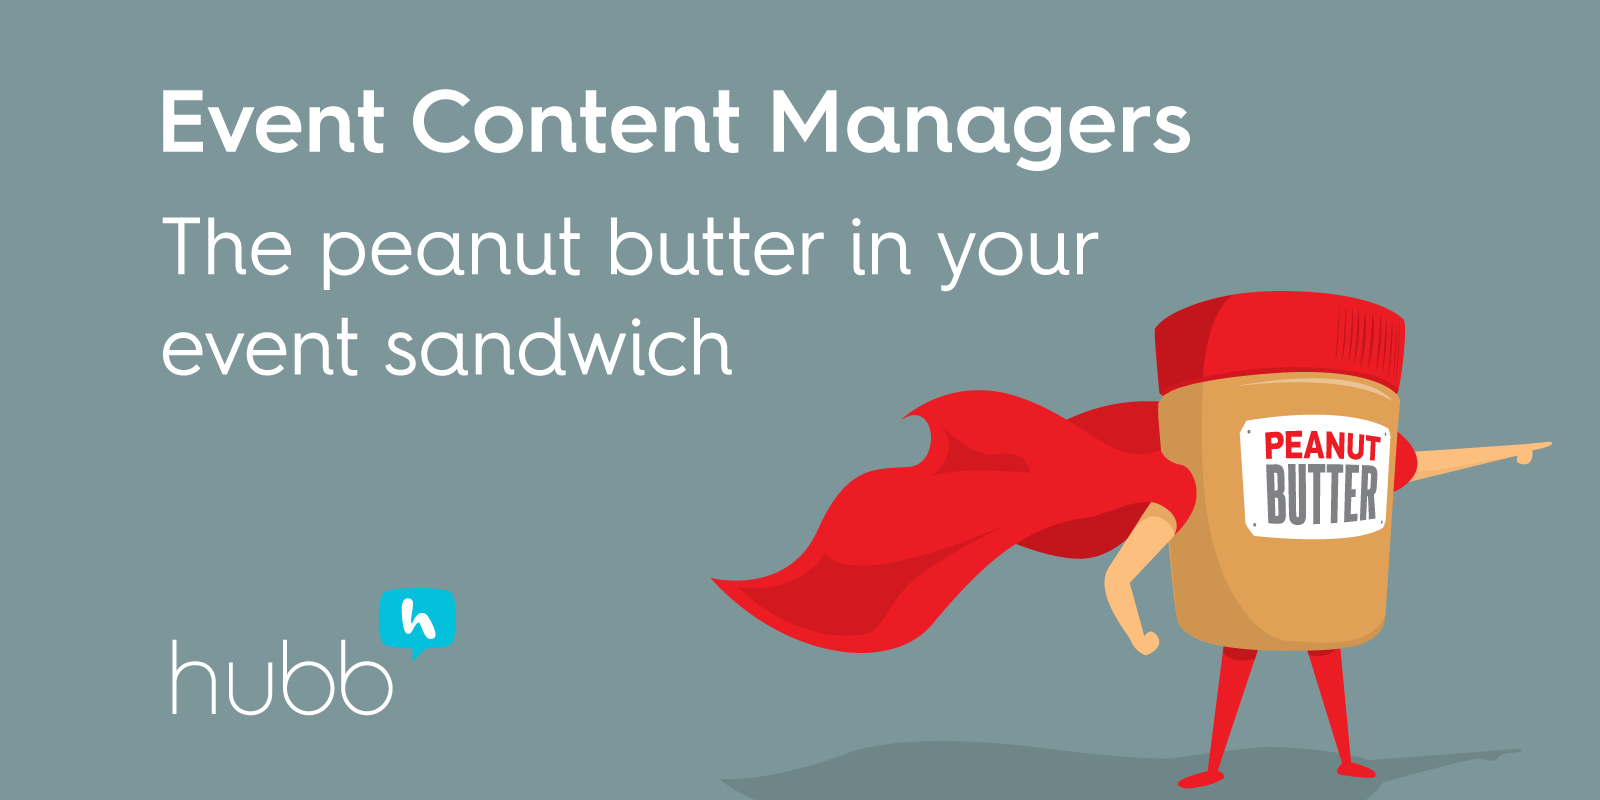 Who is an event content manager? The peanut butter in your event sandwich